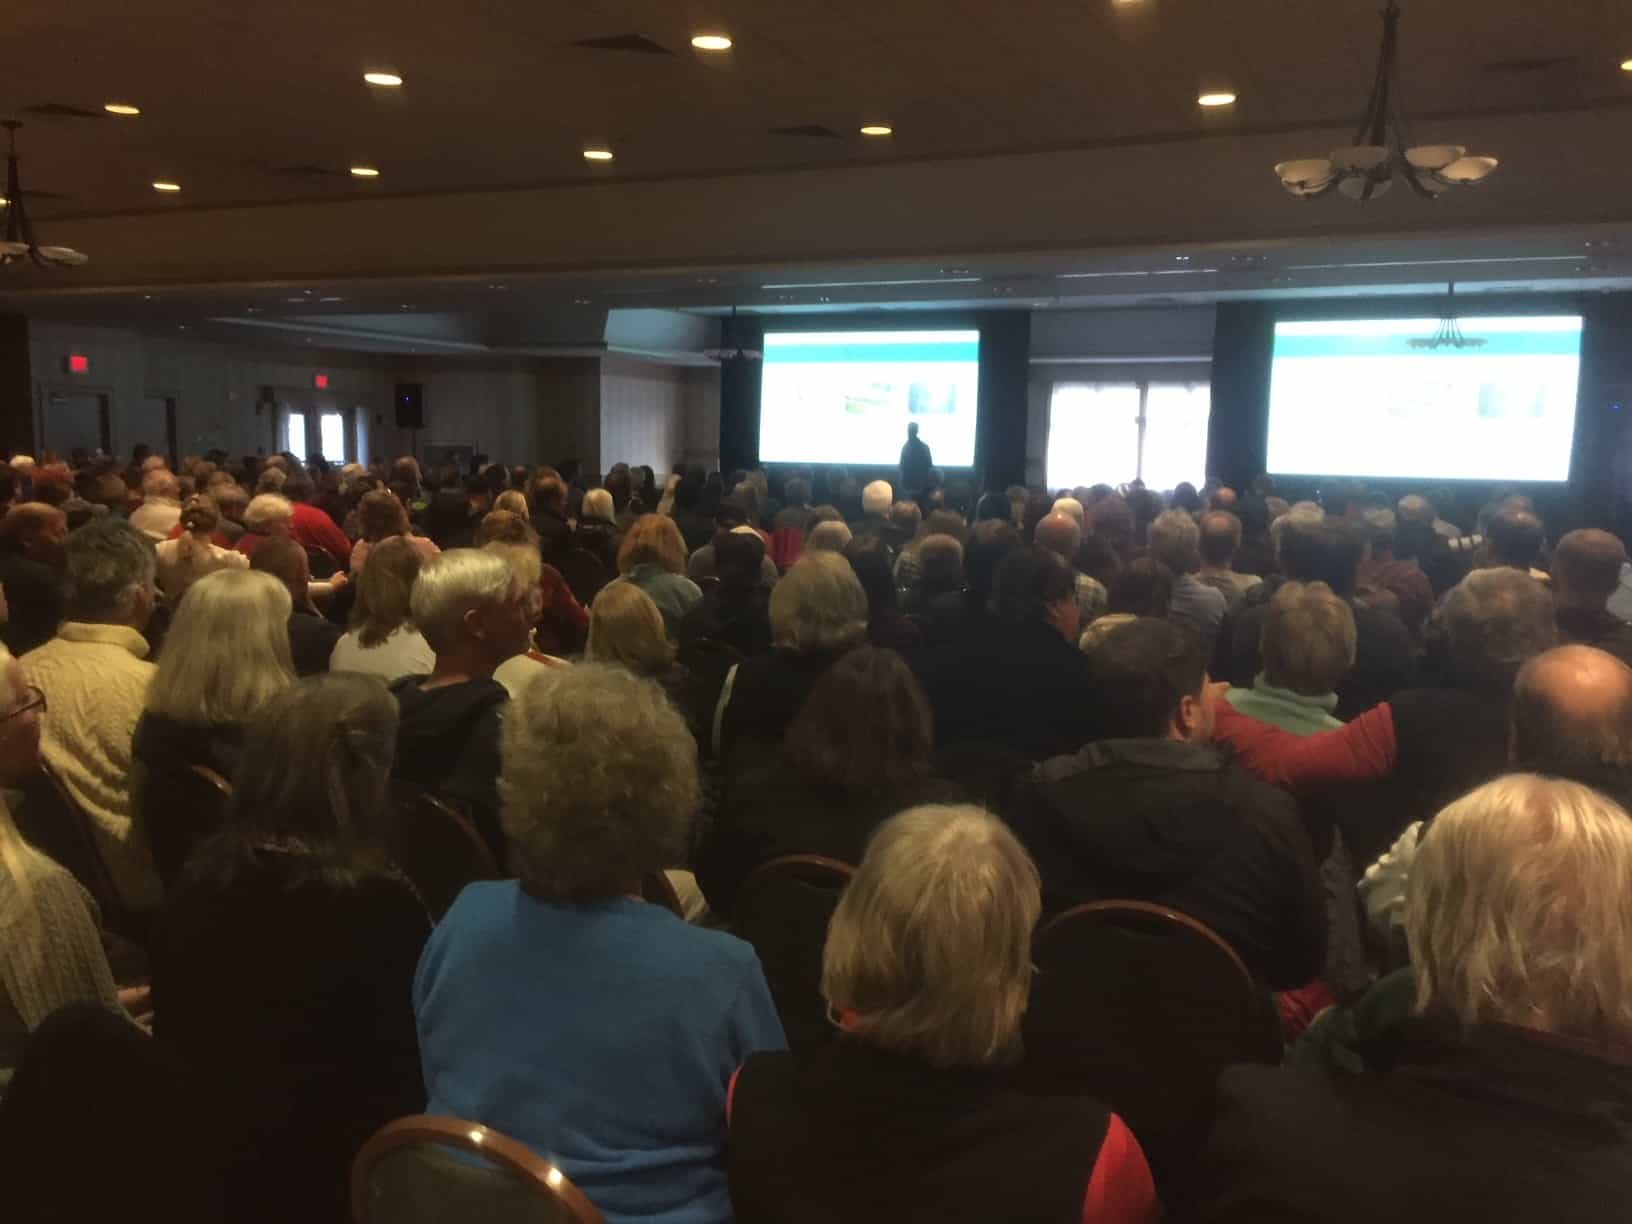 Crowd of approximately 400 gather to hear Killington Resort Update.